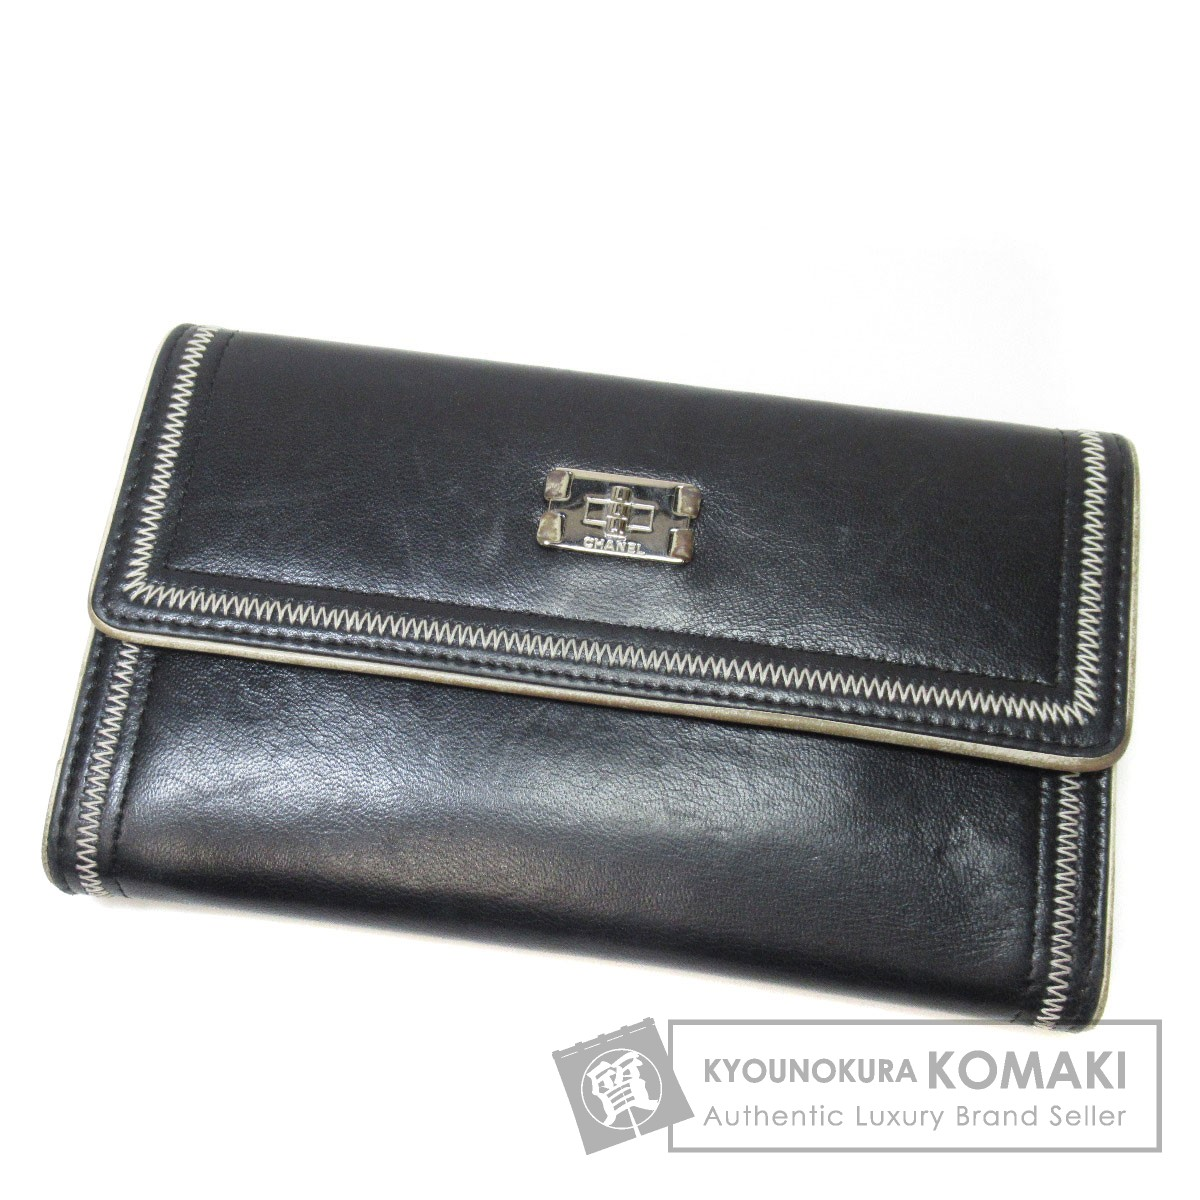 dd2e5aa6c217 Kyonokura Komaki Brand Cheapest Challenger: Authentic CHANEL Logo ...